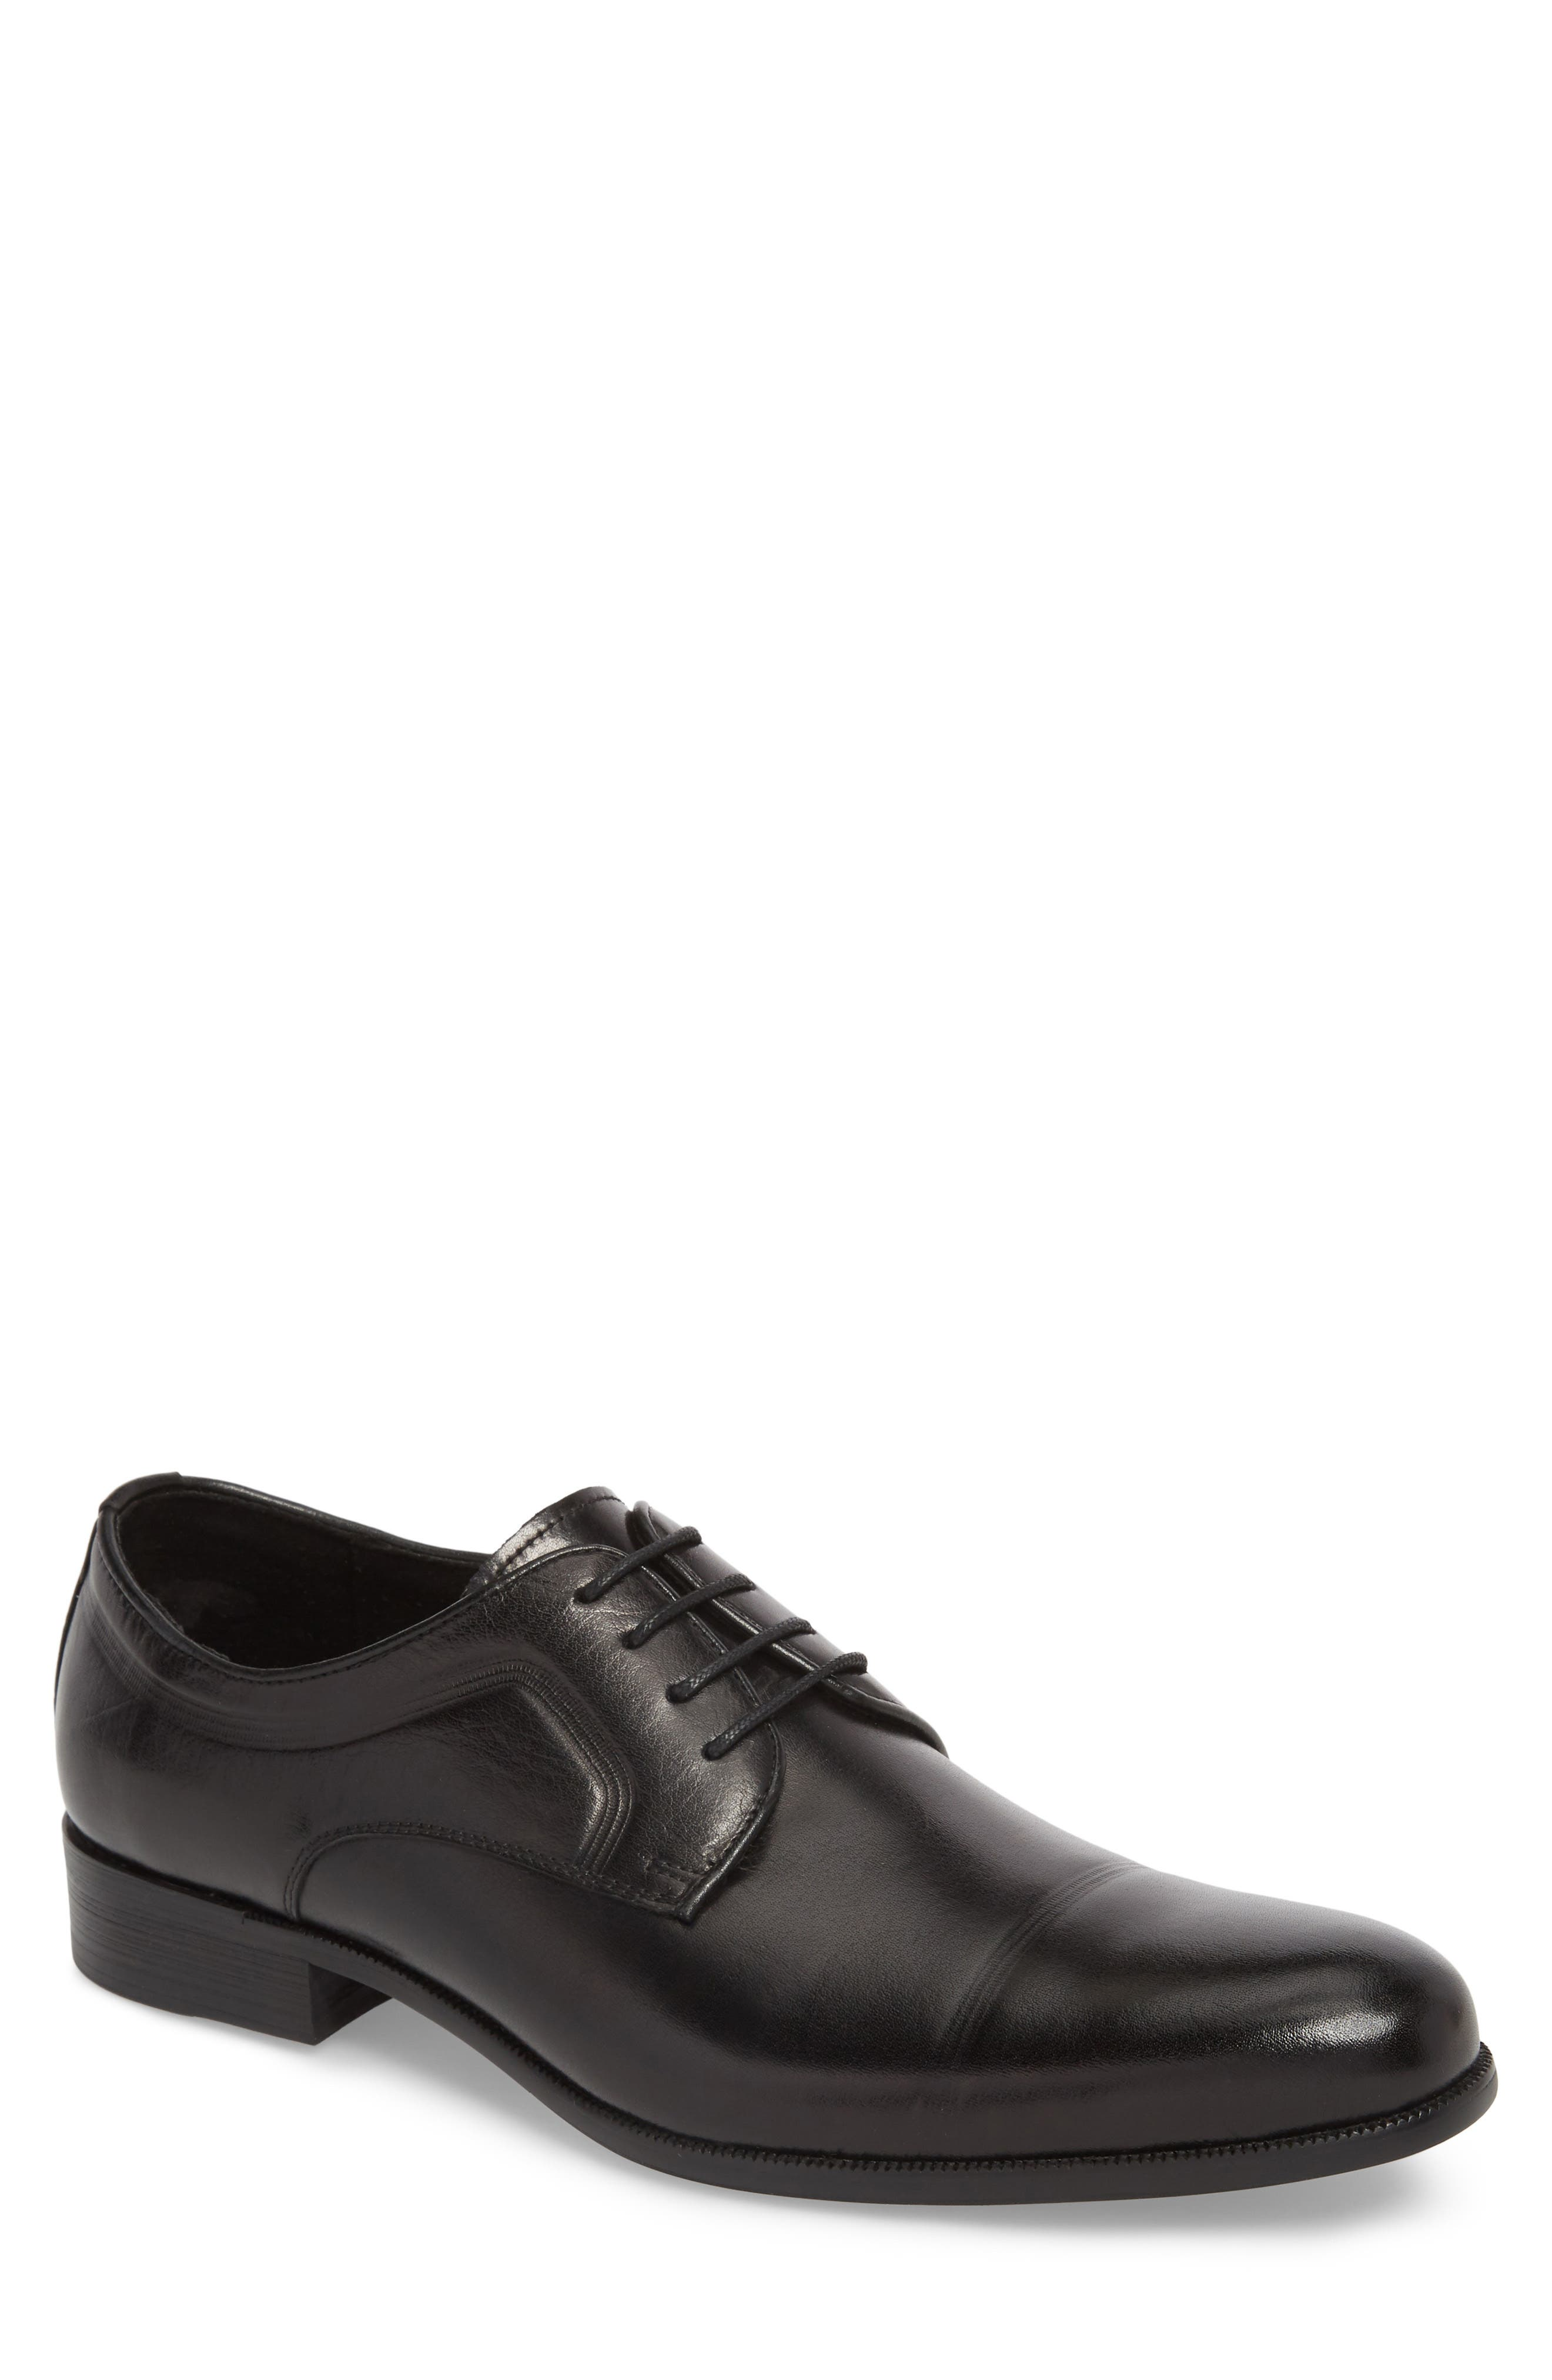 Chief Cap Toe Derby,                         Main,                         color, Black Leather